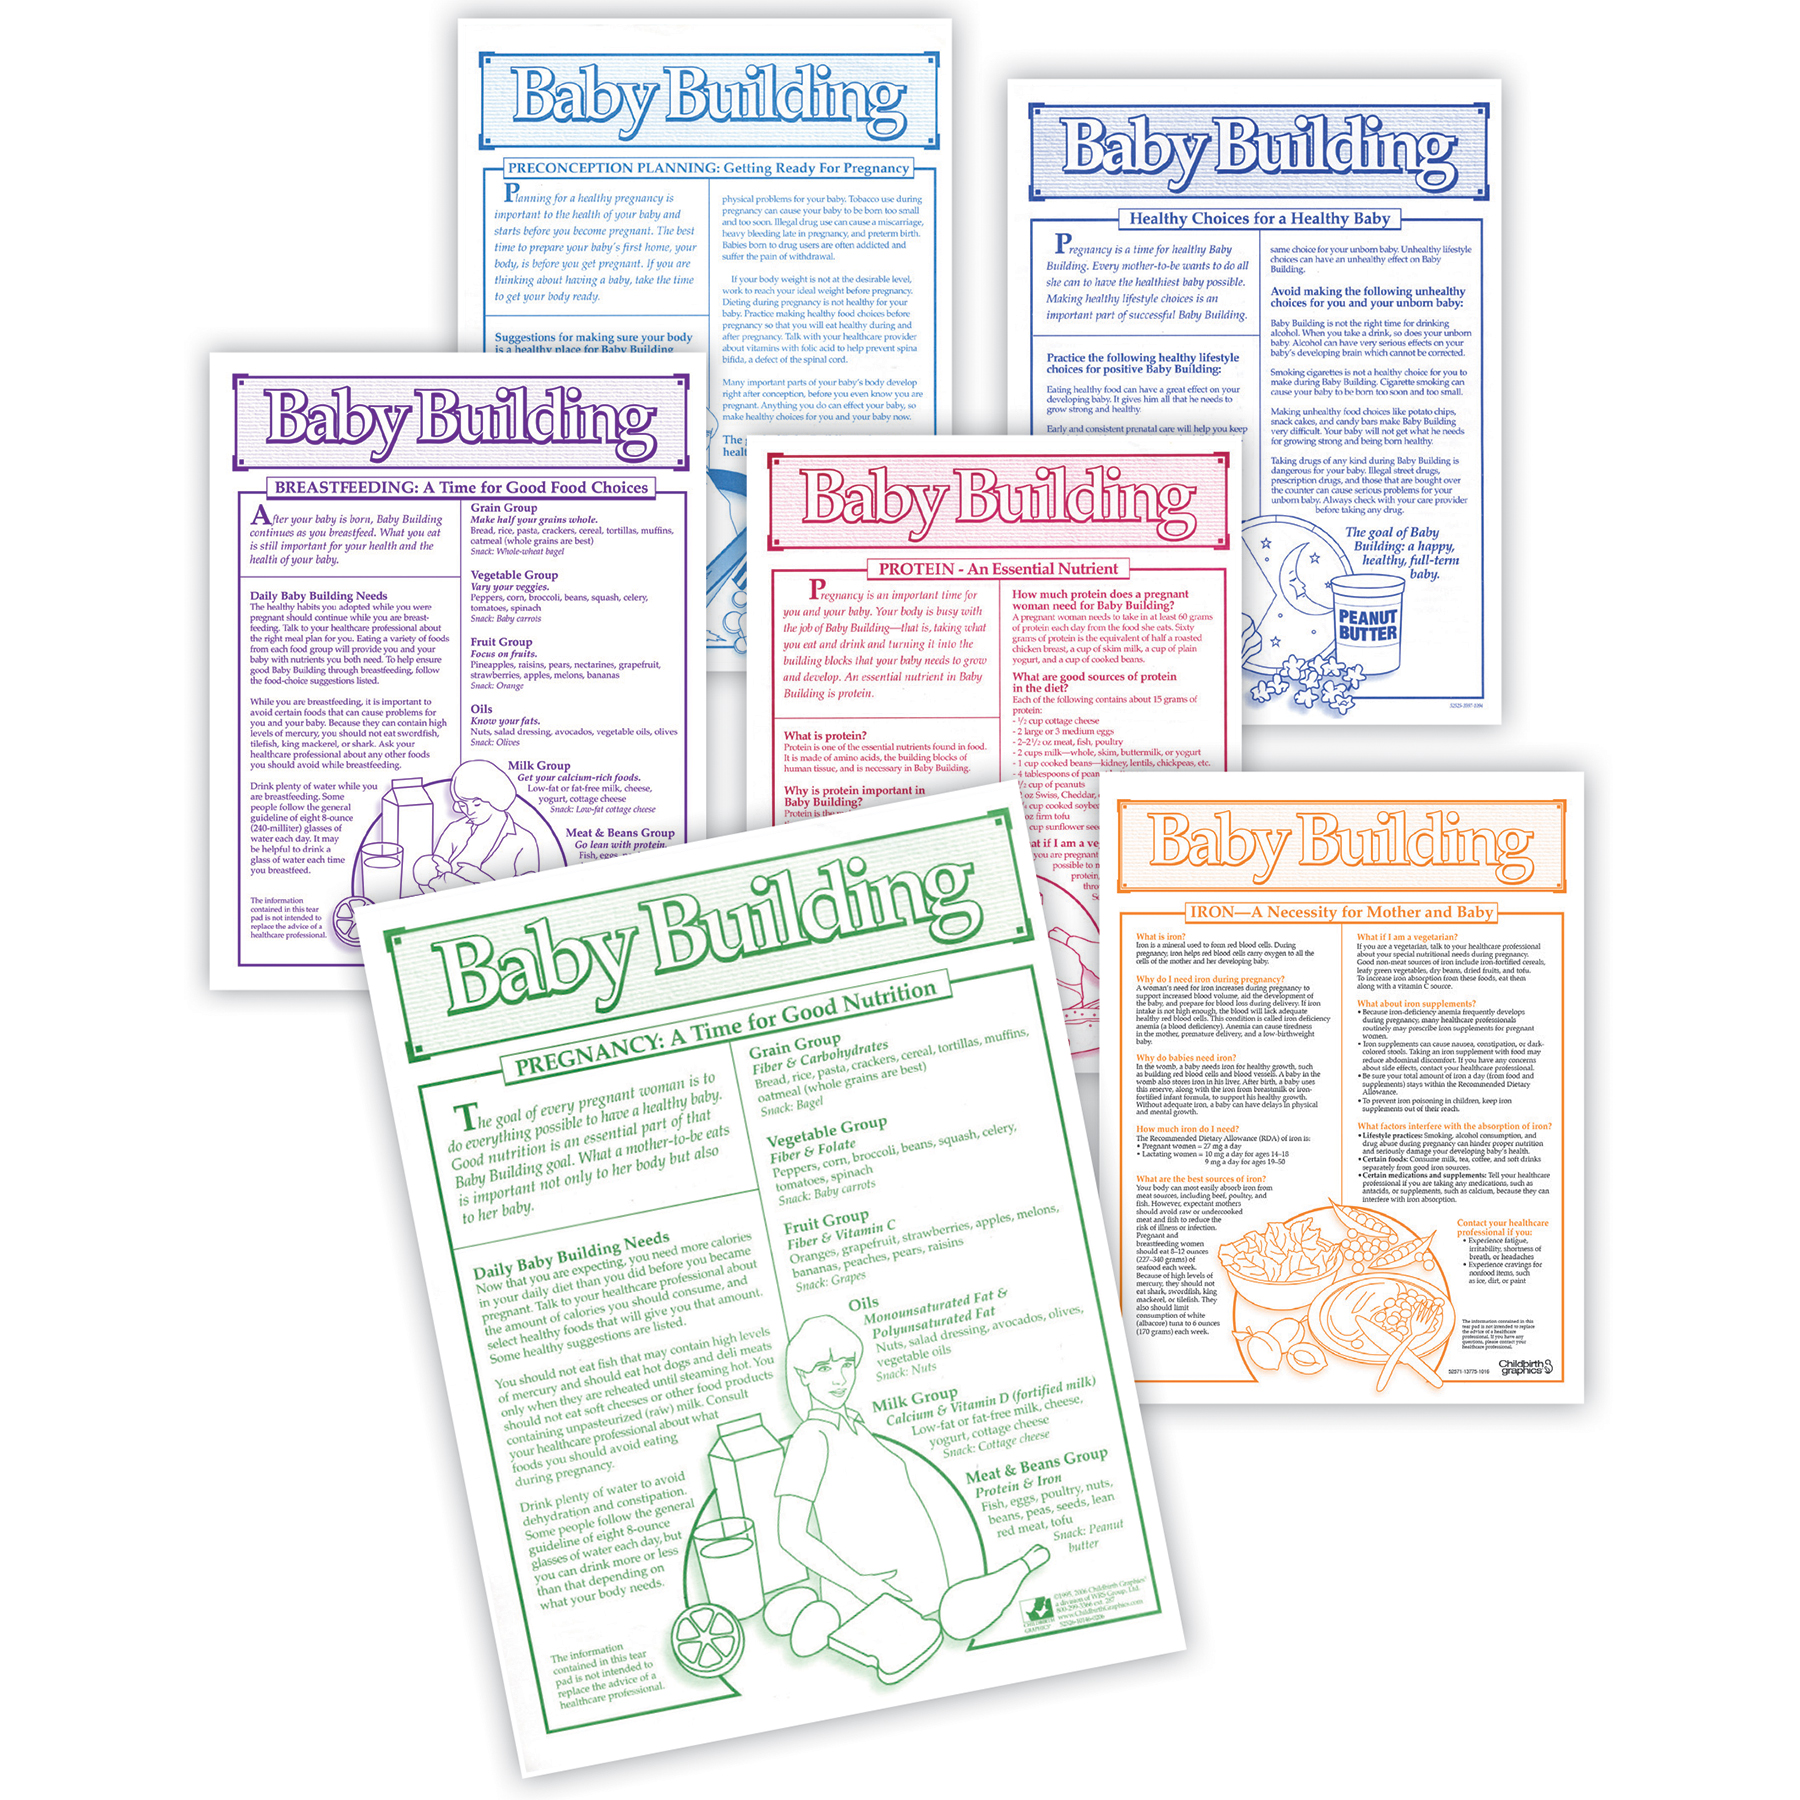 Baby Building Tear Pad Set (6), set of 6 tear pads about nutrition for babies and pregnancy, Childbirth Graphics, 52755